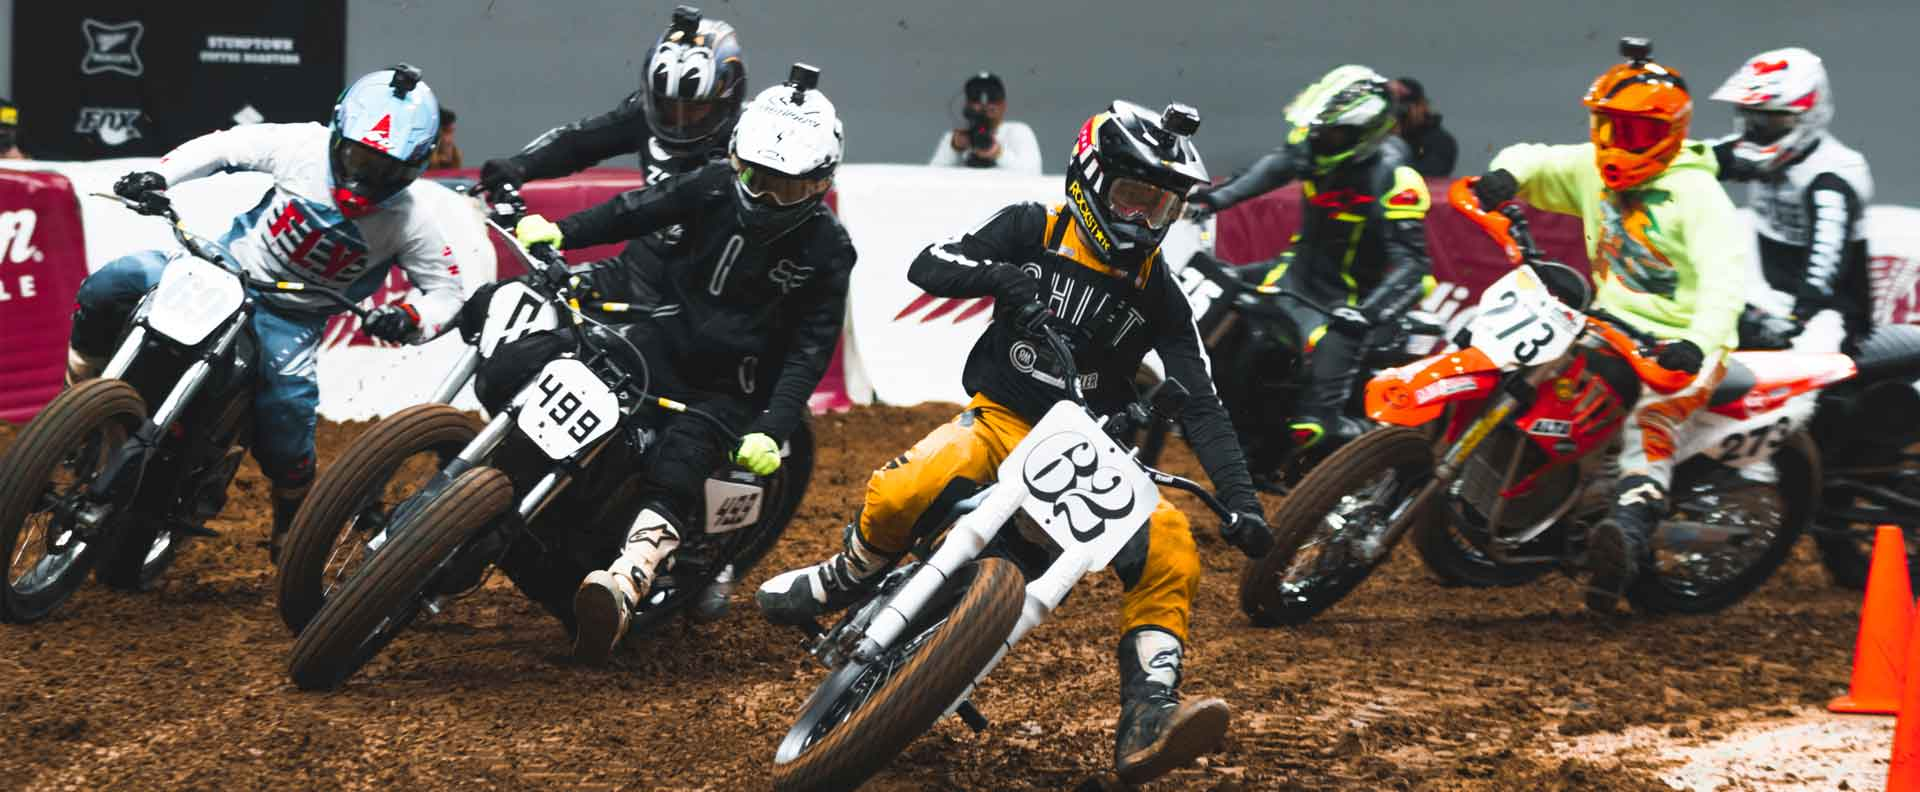 Andy ripping in the Electric Nationals flat track motorcycle race division